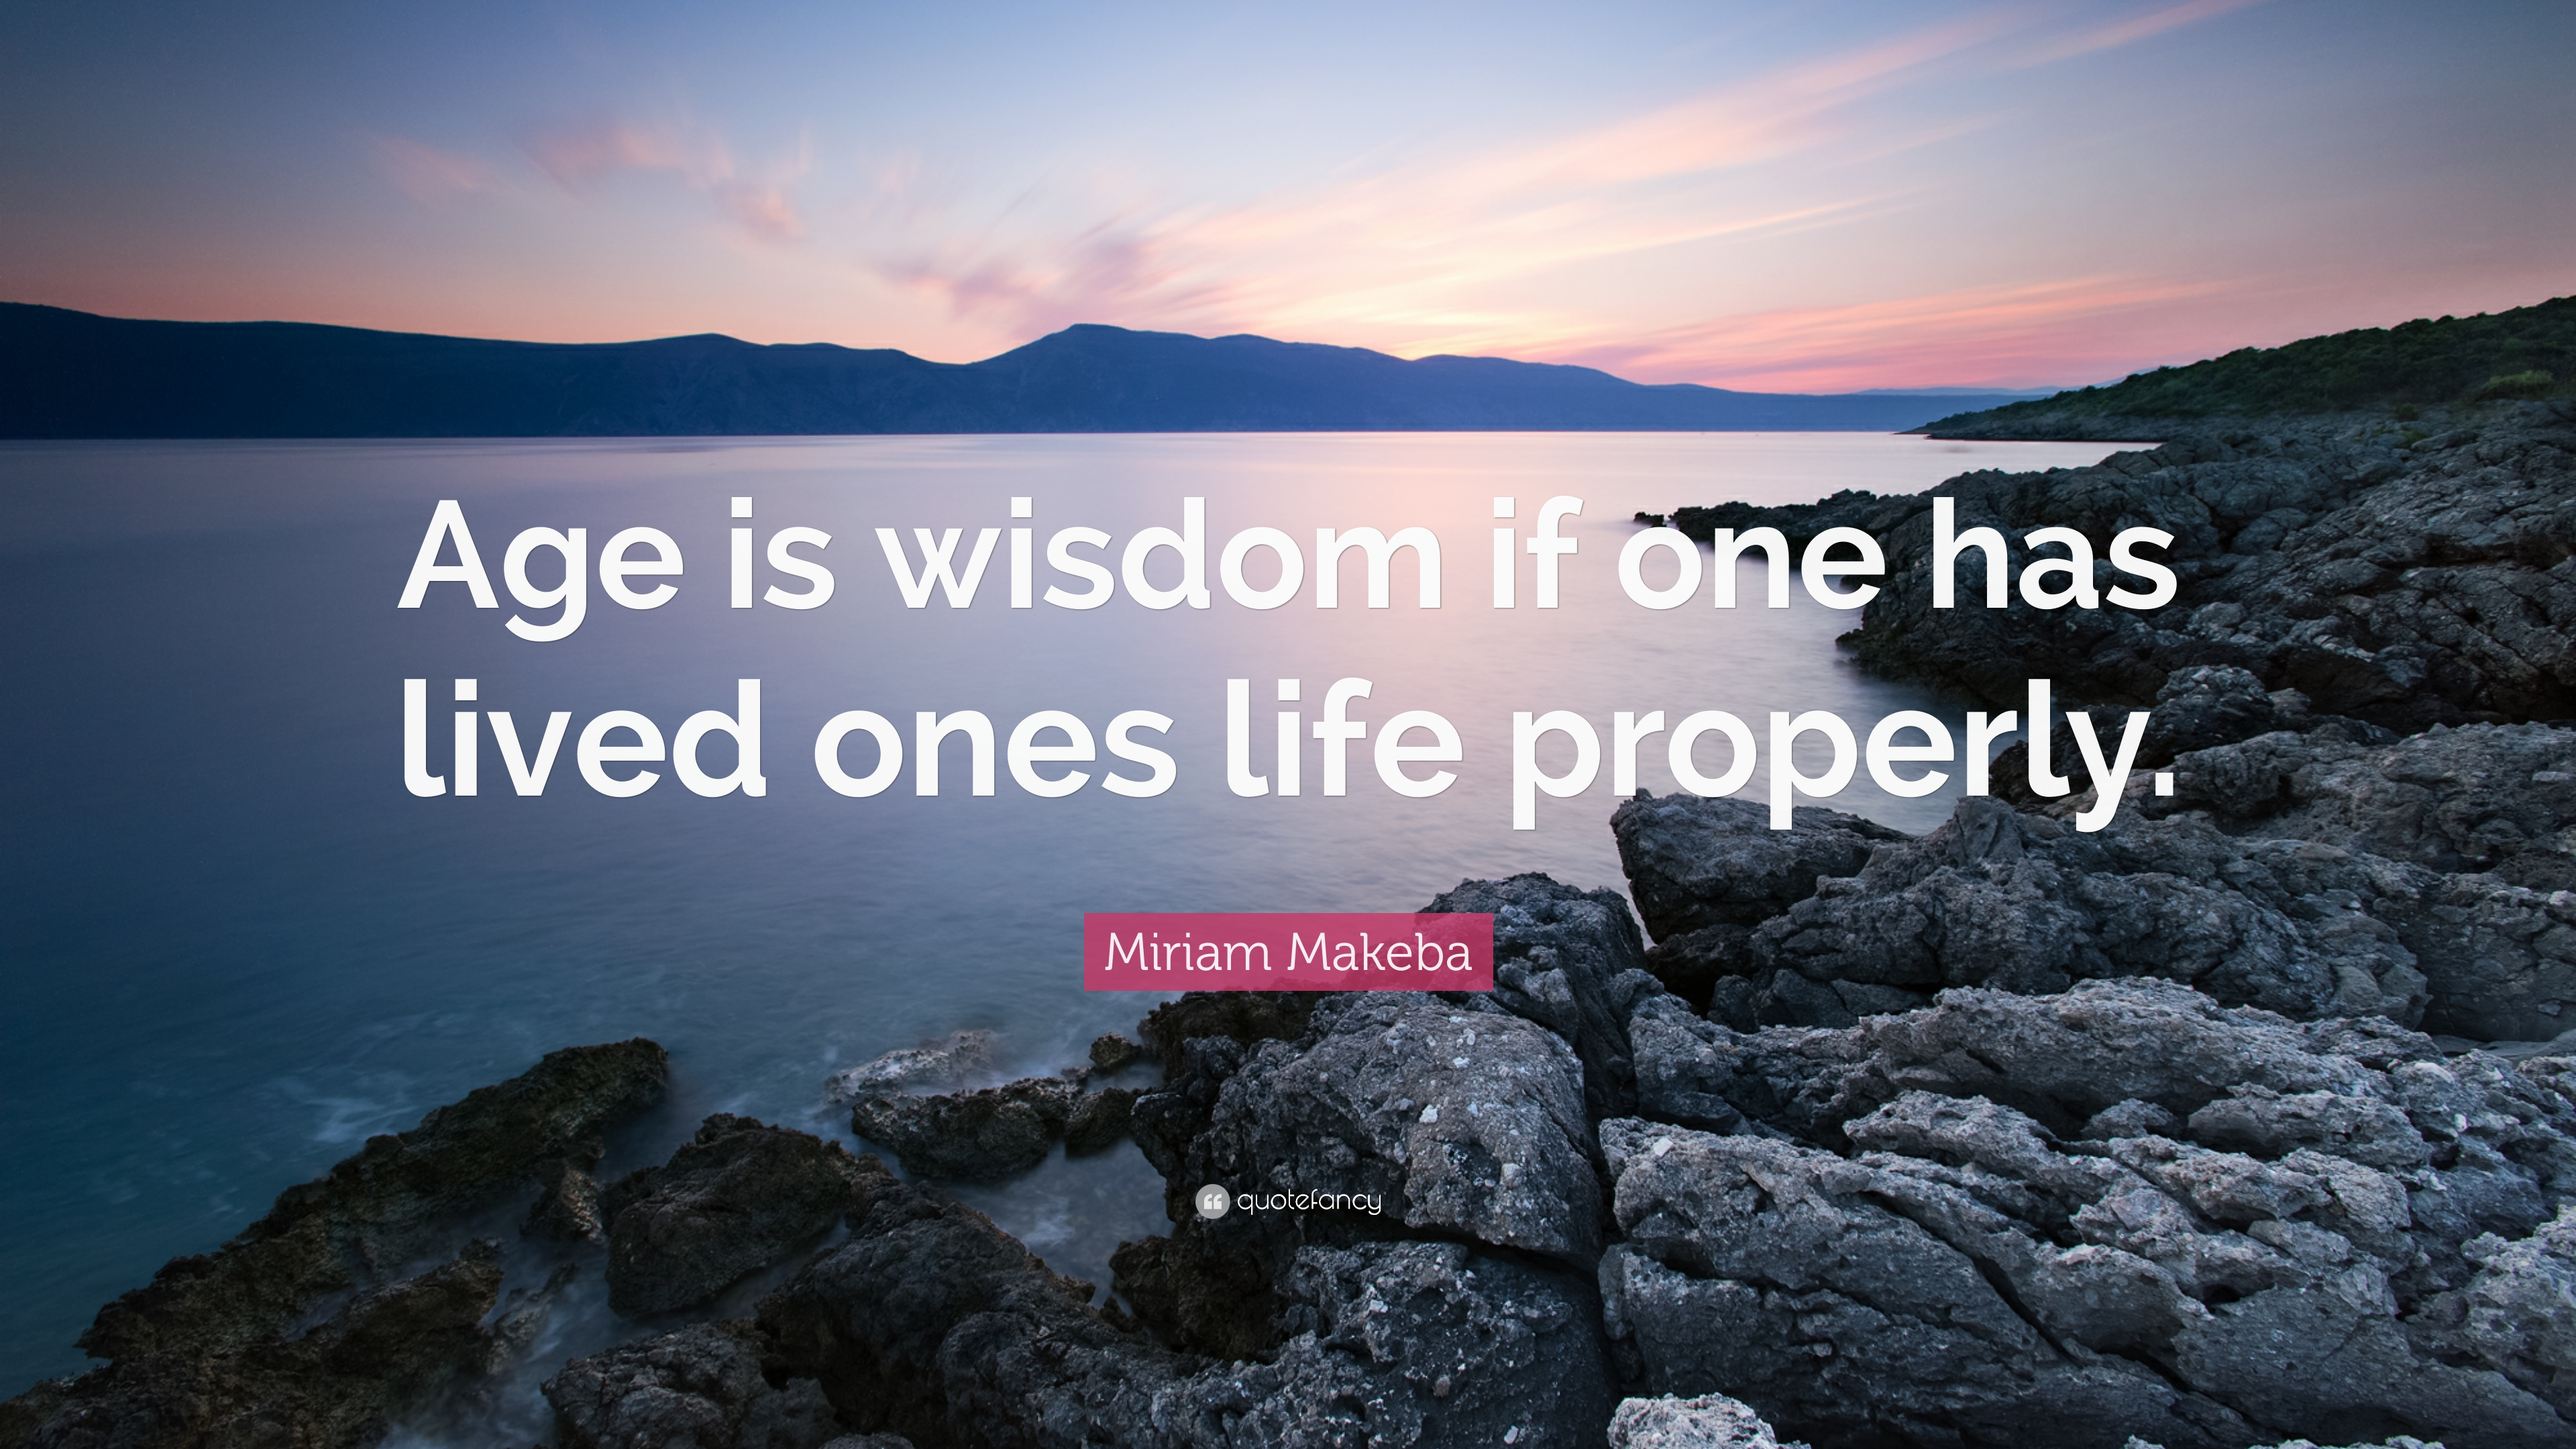 Miriam Makeba Quote: U201cAge Is Wisdom If One Has Lived Ones Life Properly.